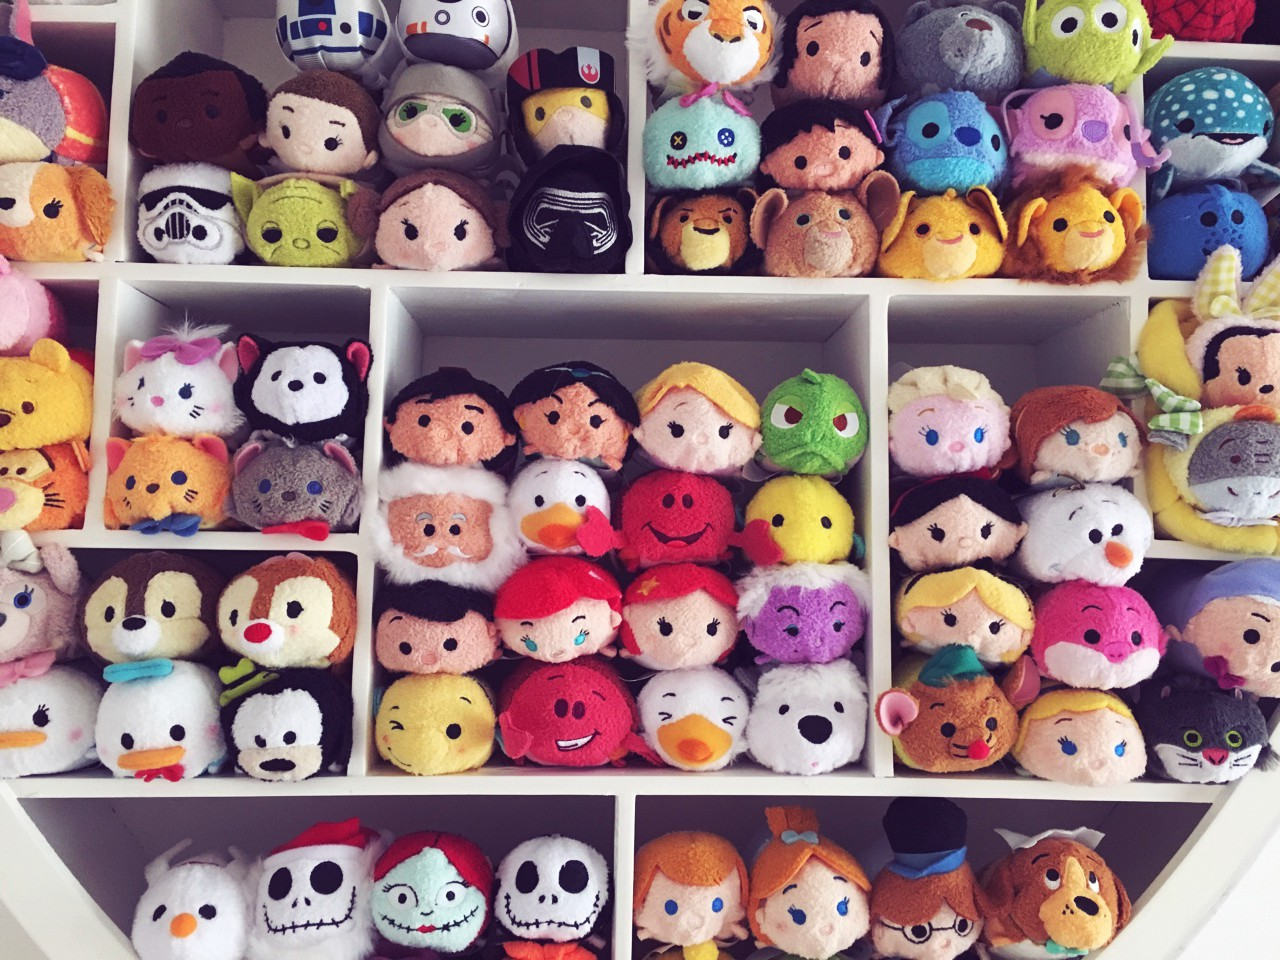 Accio Victoria: The Disney Tsum Tsum Tag